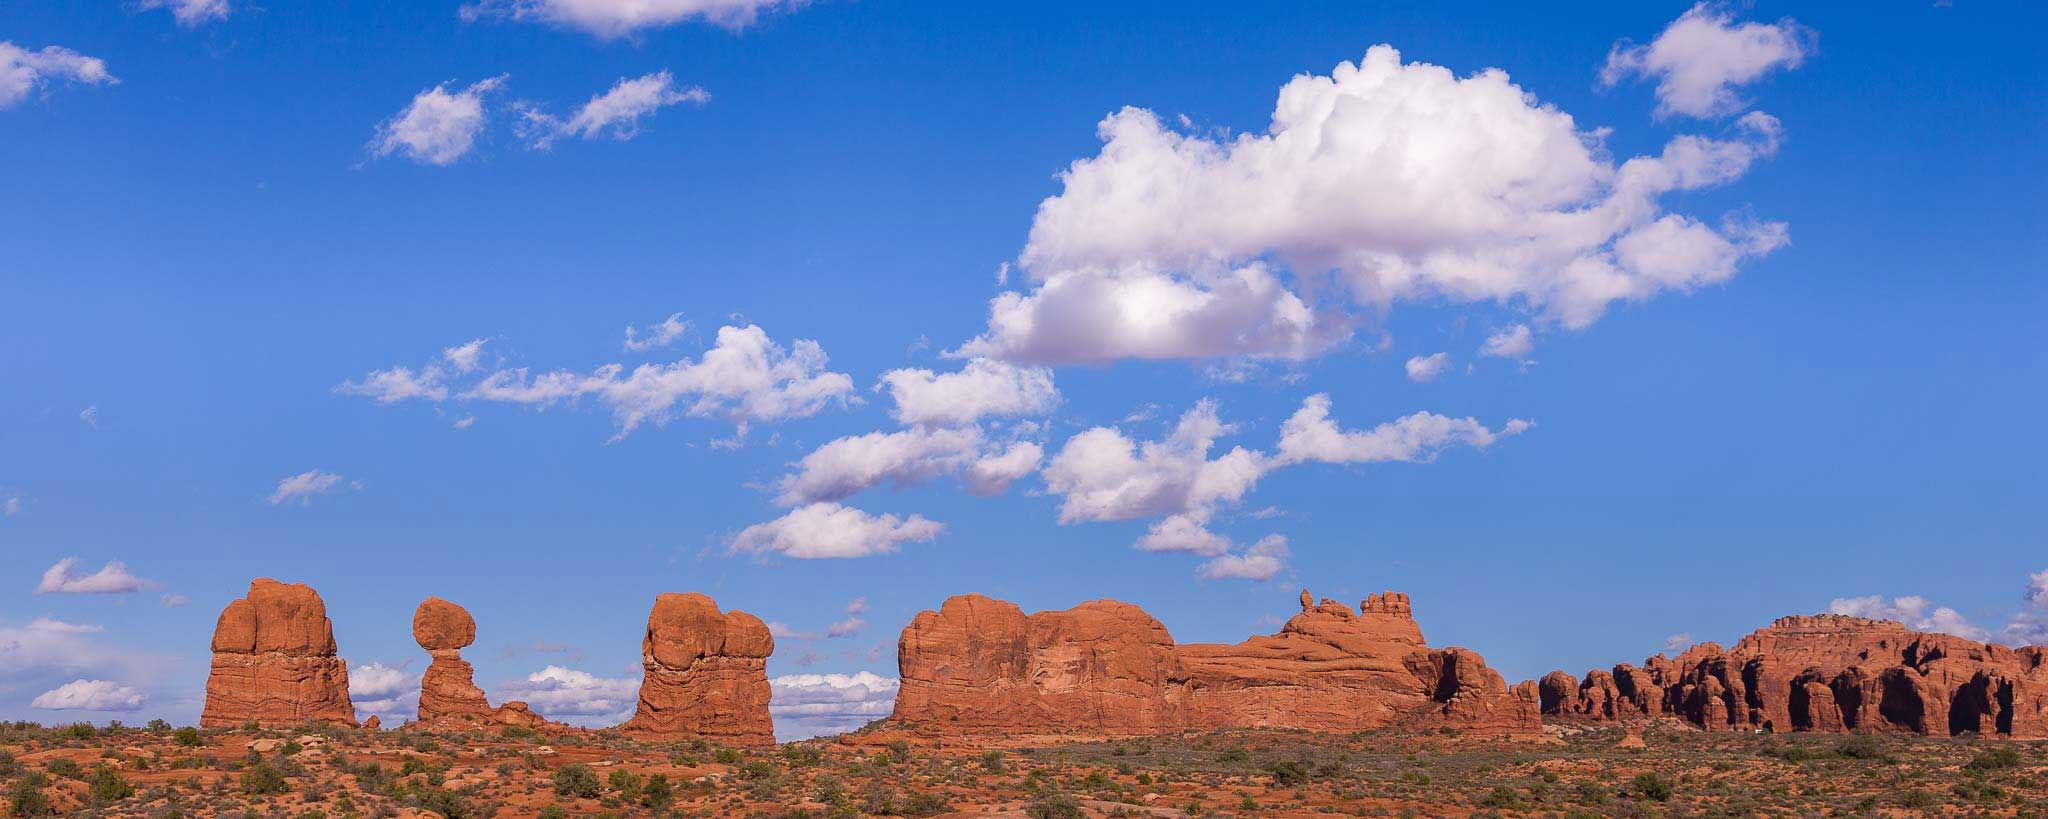 Cabecera Arches, USA